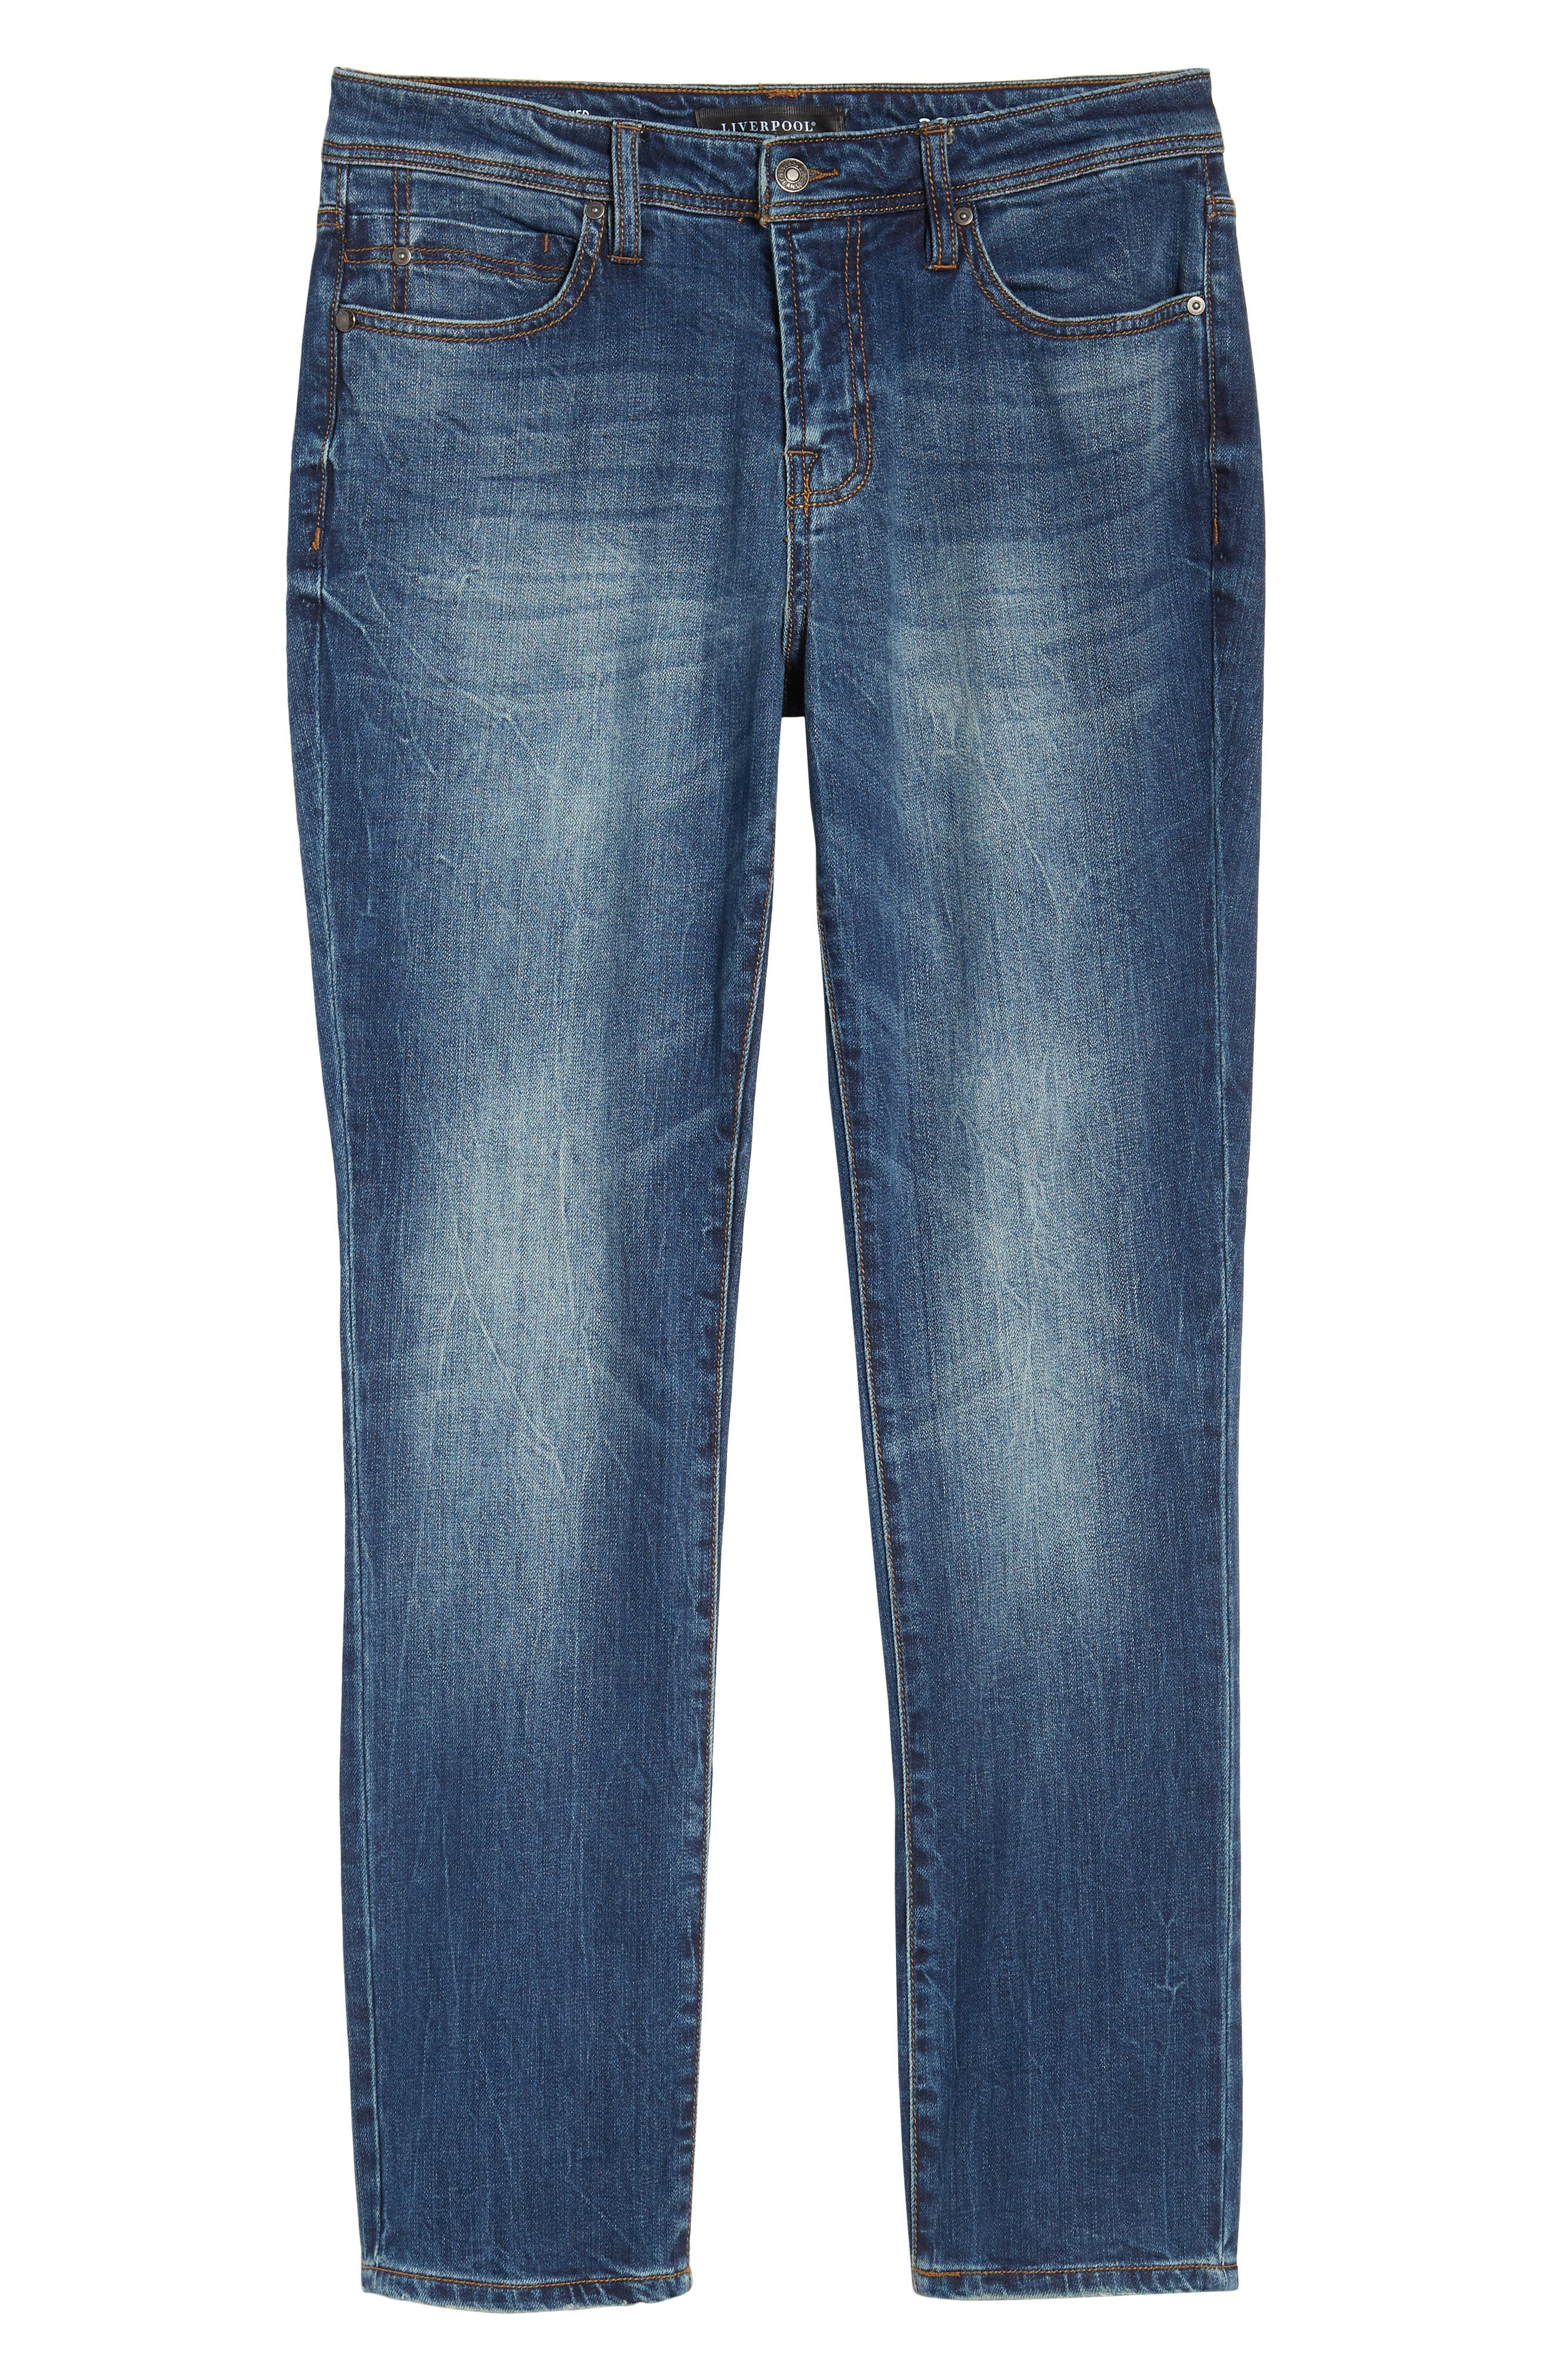 Jeans Co. Kingston Slim Straight Leg Jeans,                             Alternate thumbnail 6, color,                             Odessa Vintage Dark